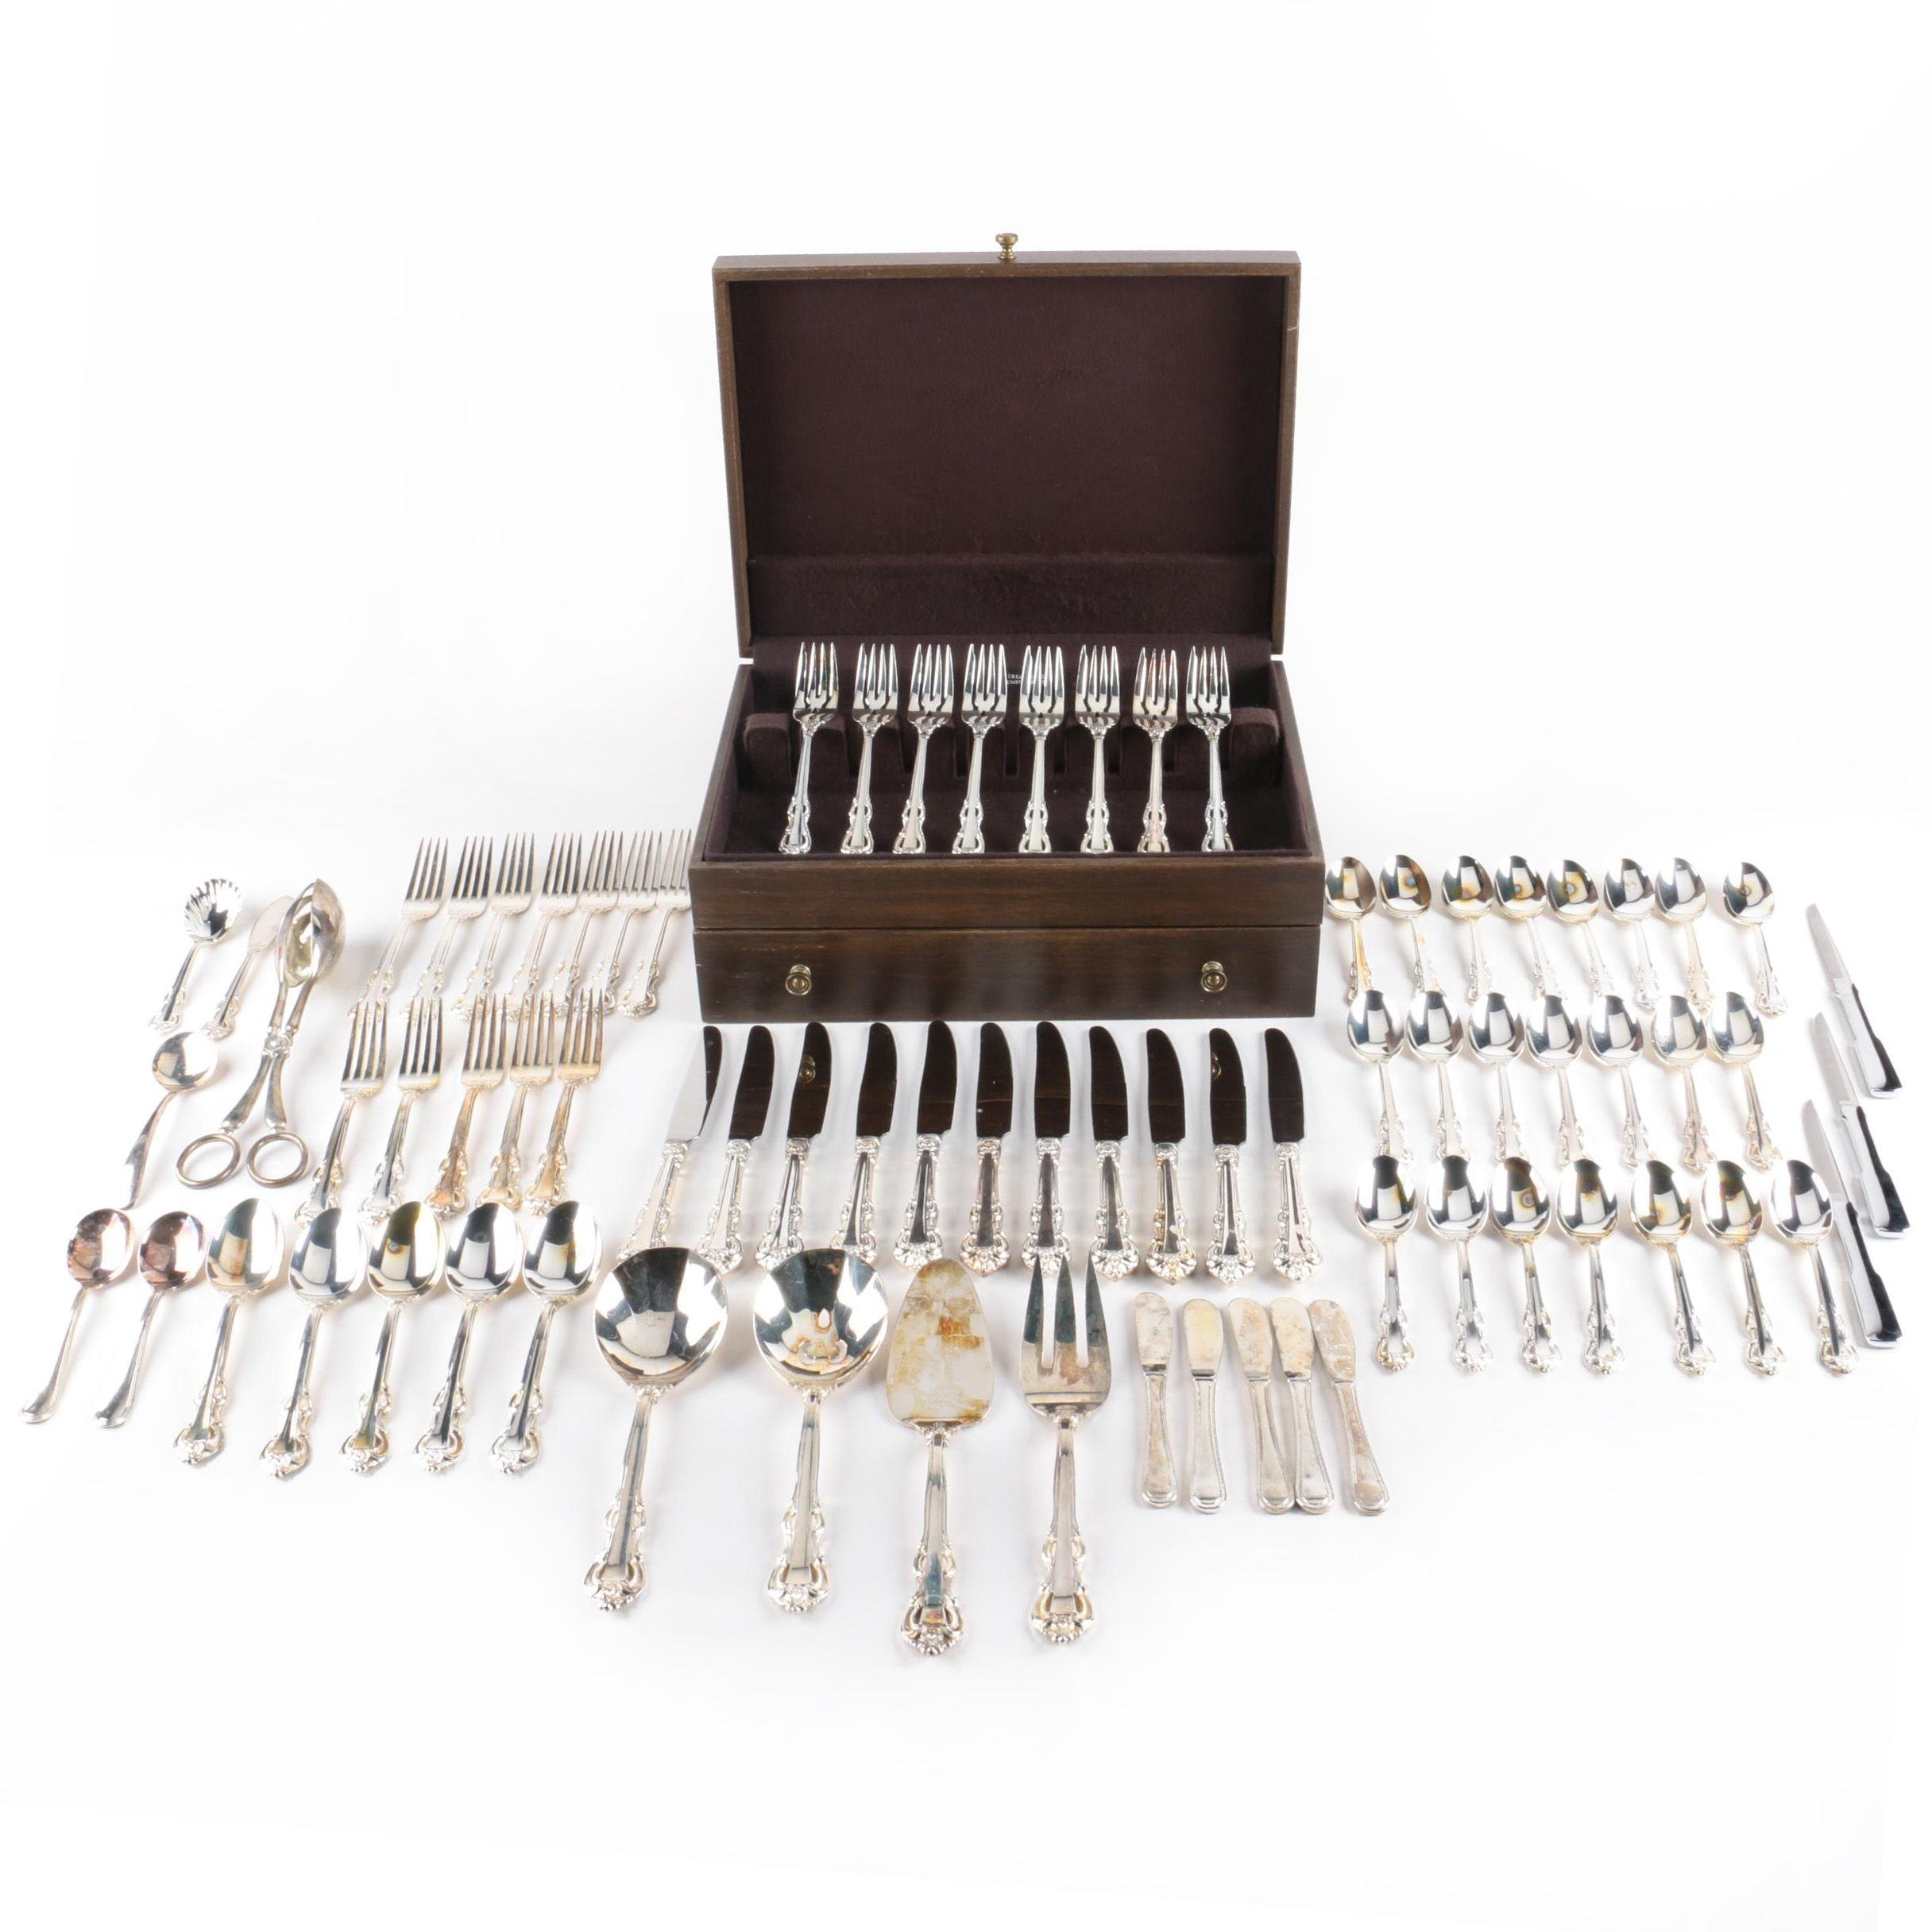 "Towle ""King Arthur"" Stainless Steel Flatware Set with Assorted Silver Plate"